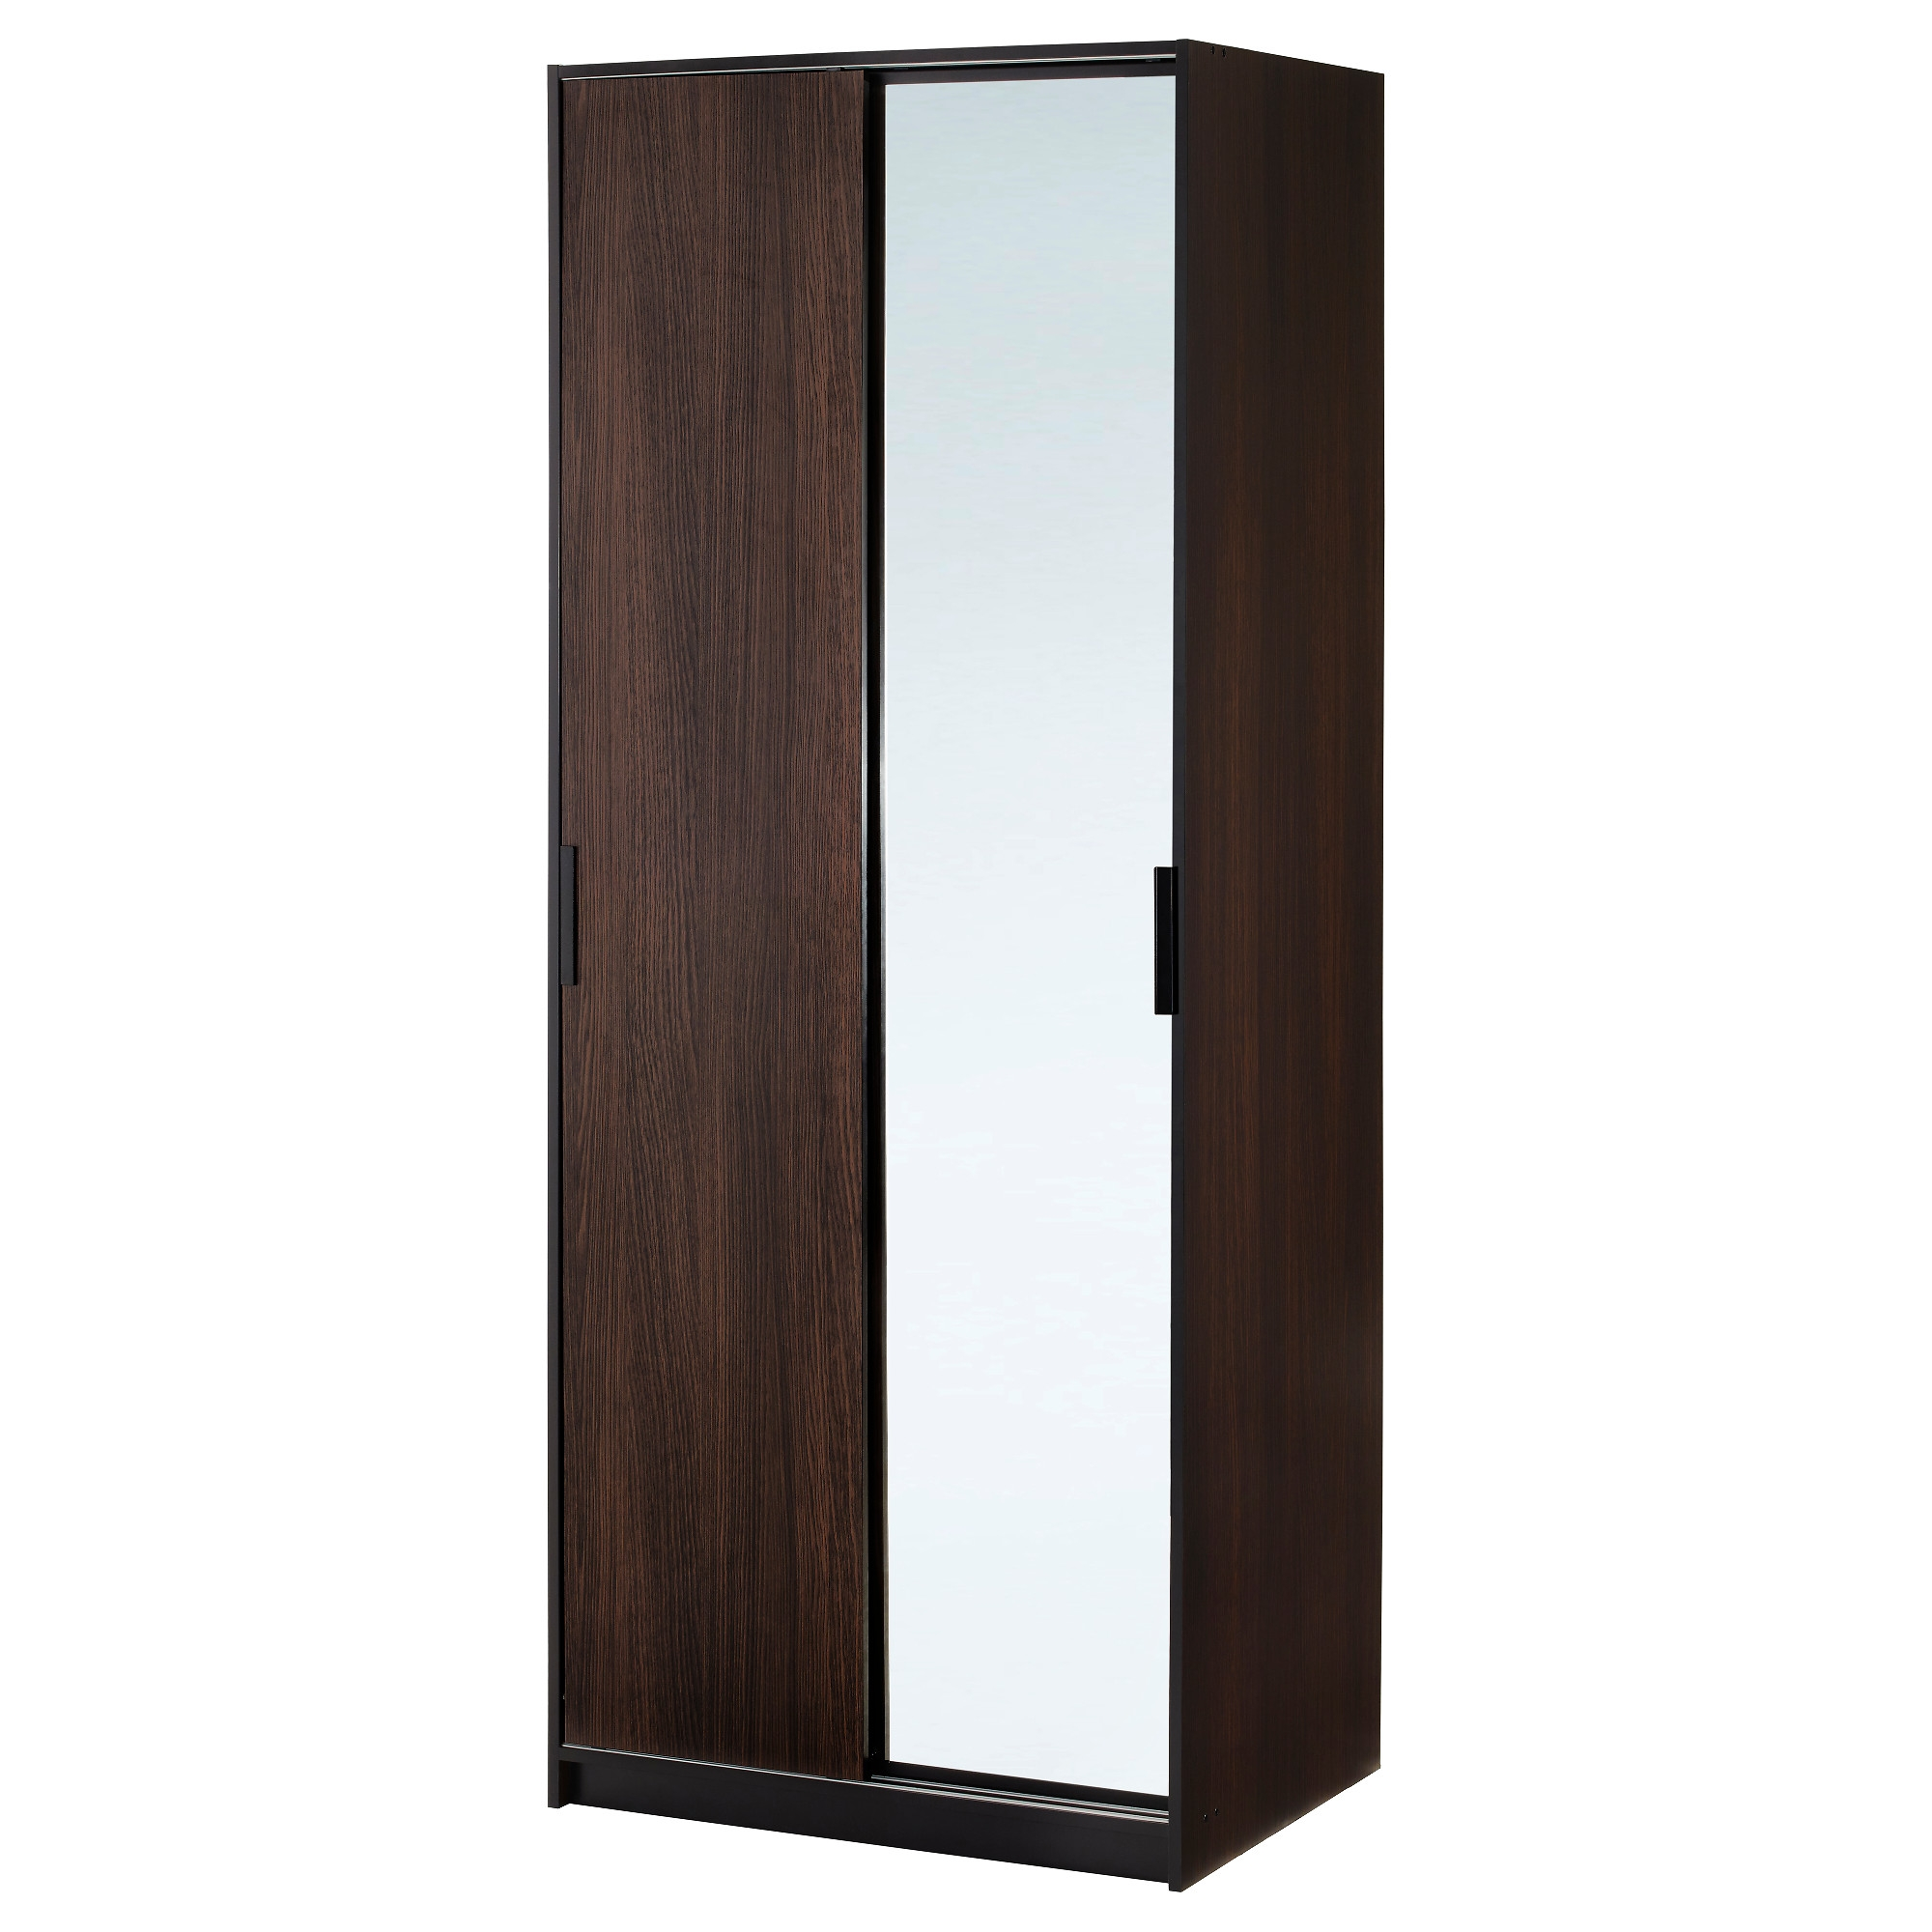 Wardrobes Armoires Closets Ikea With Regard To Solid Dark Wood Wardrobes (Image 15 of 15)